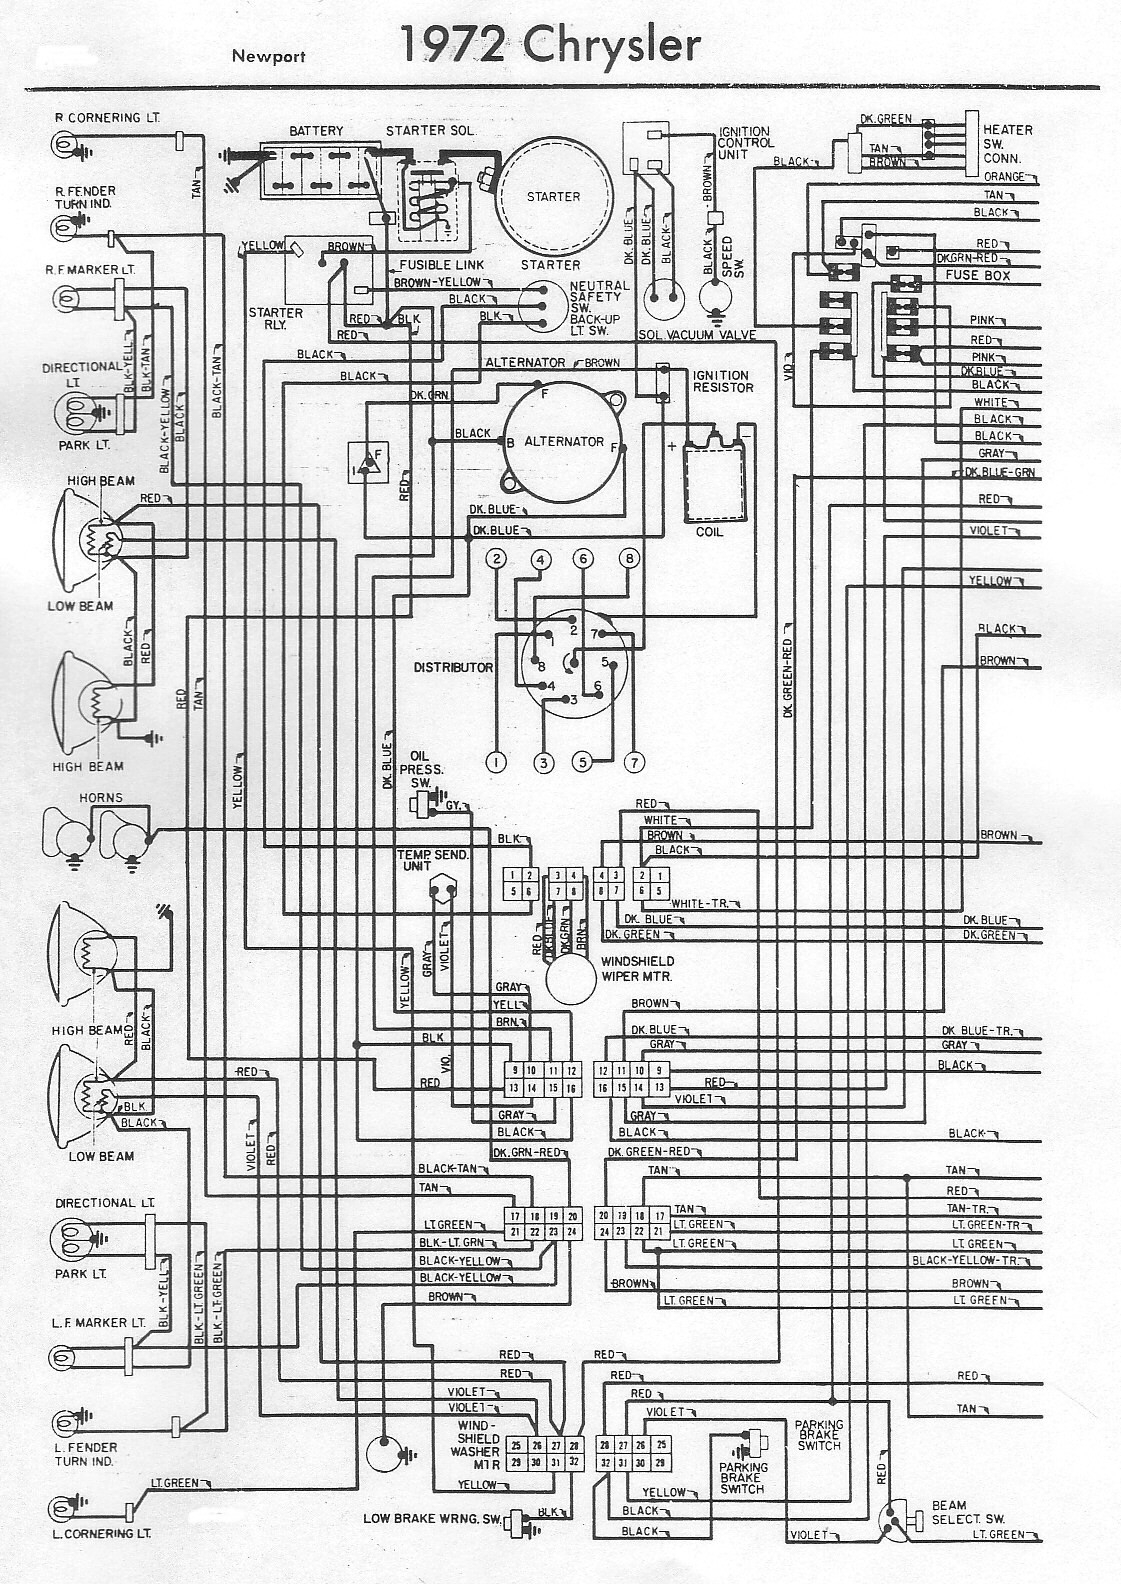 Fine chrysler obd wiring diagram ideas everything you need to know charming chrysler alternator wiring diagram gallery everything you asfbconference2016 Images